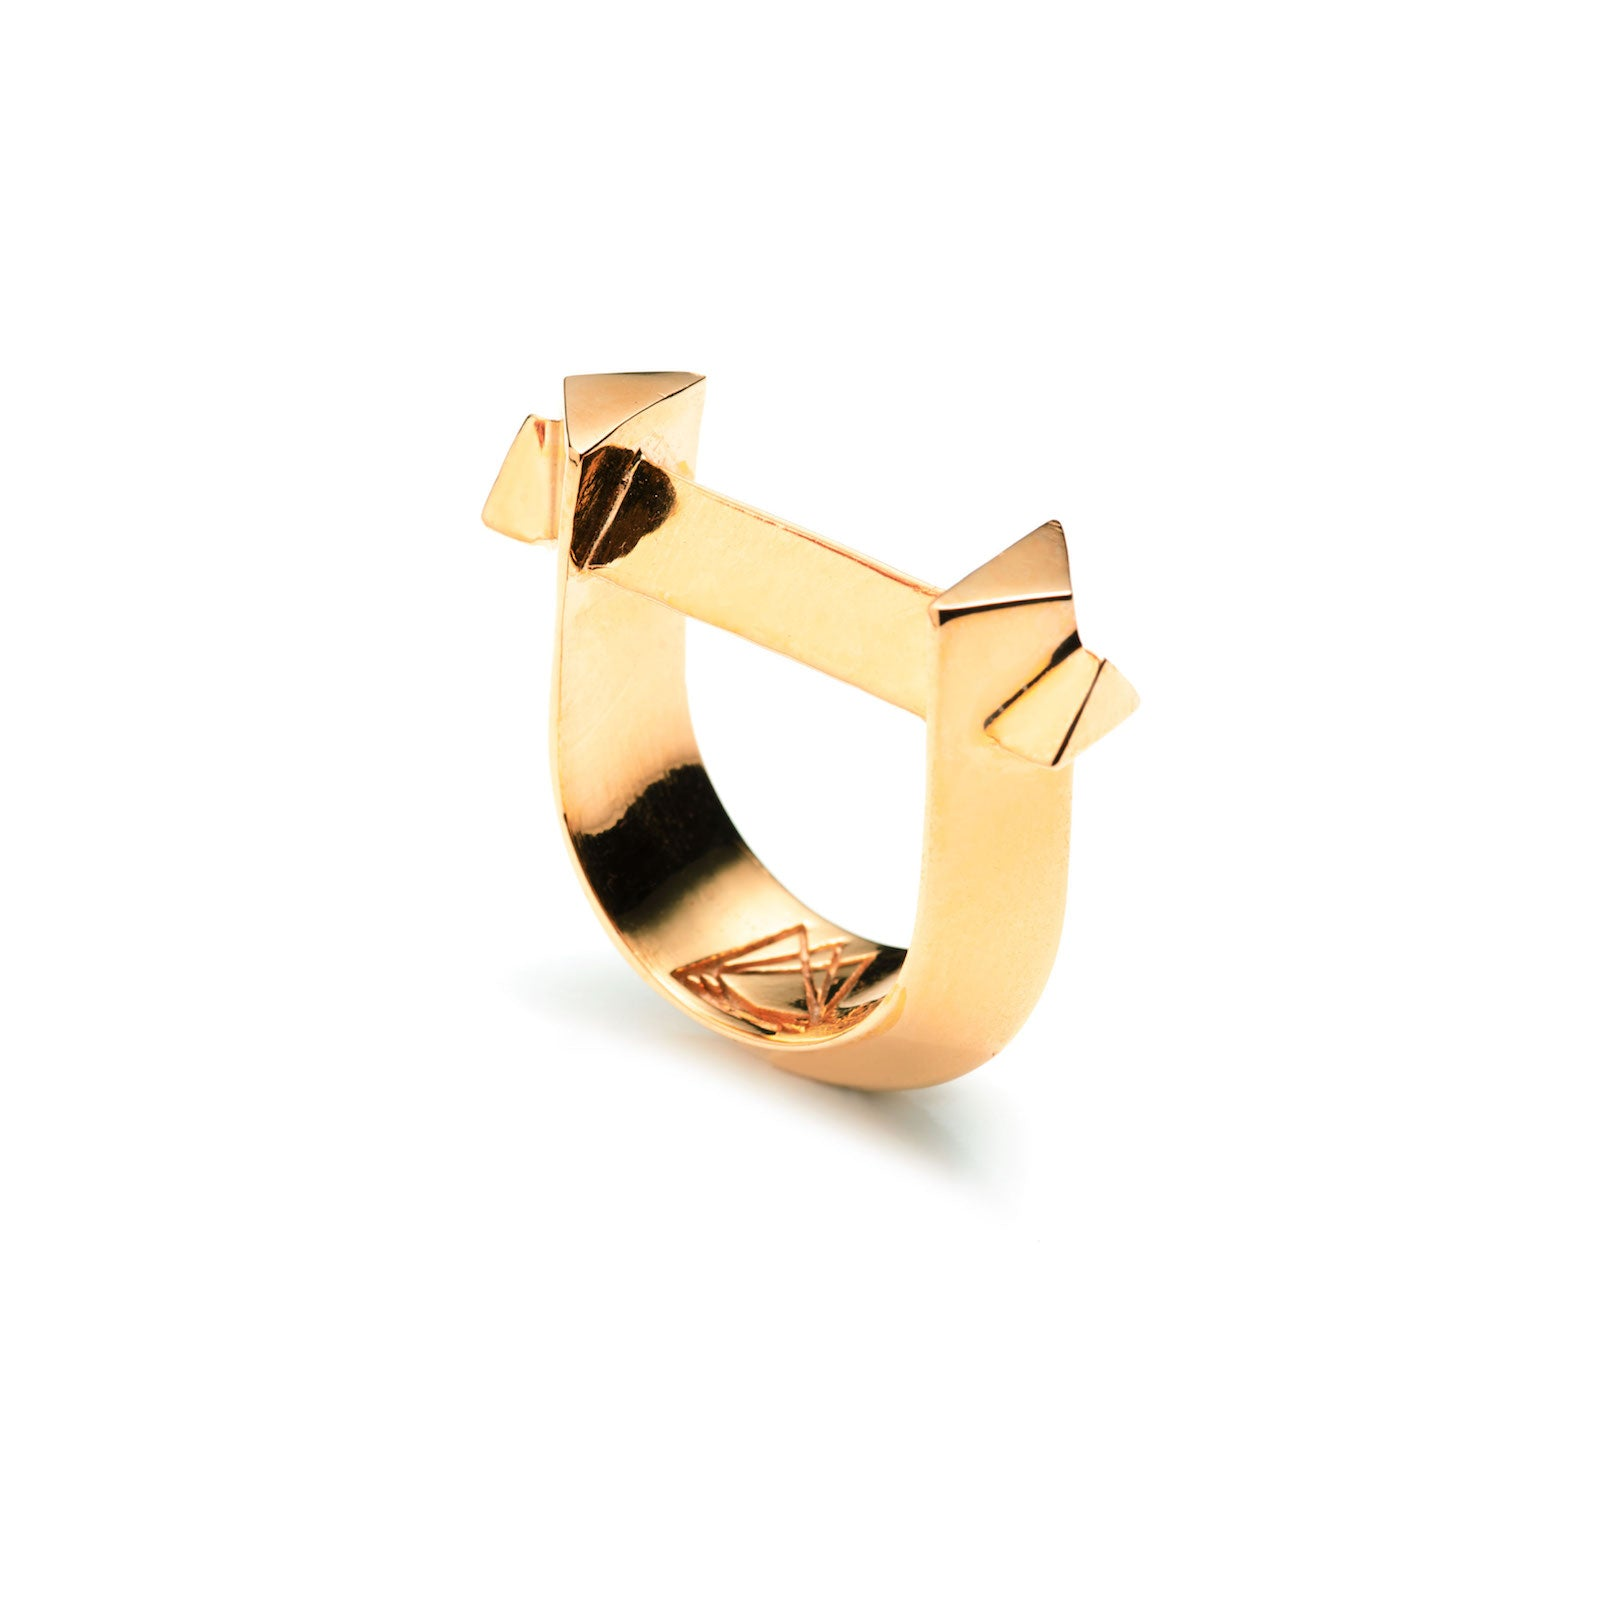 ARC RING - 18K GOLD PLATED BRASS